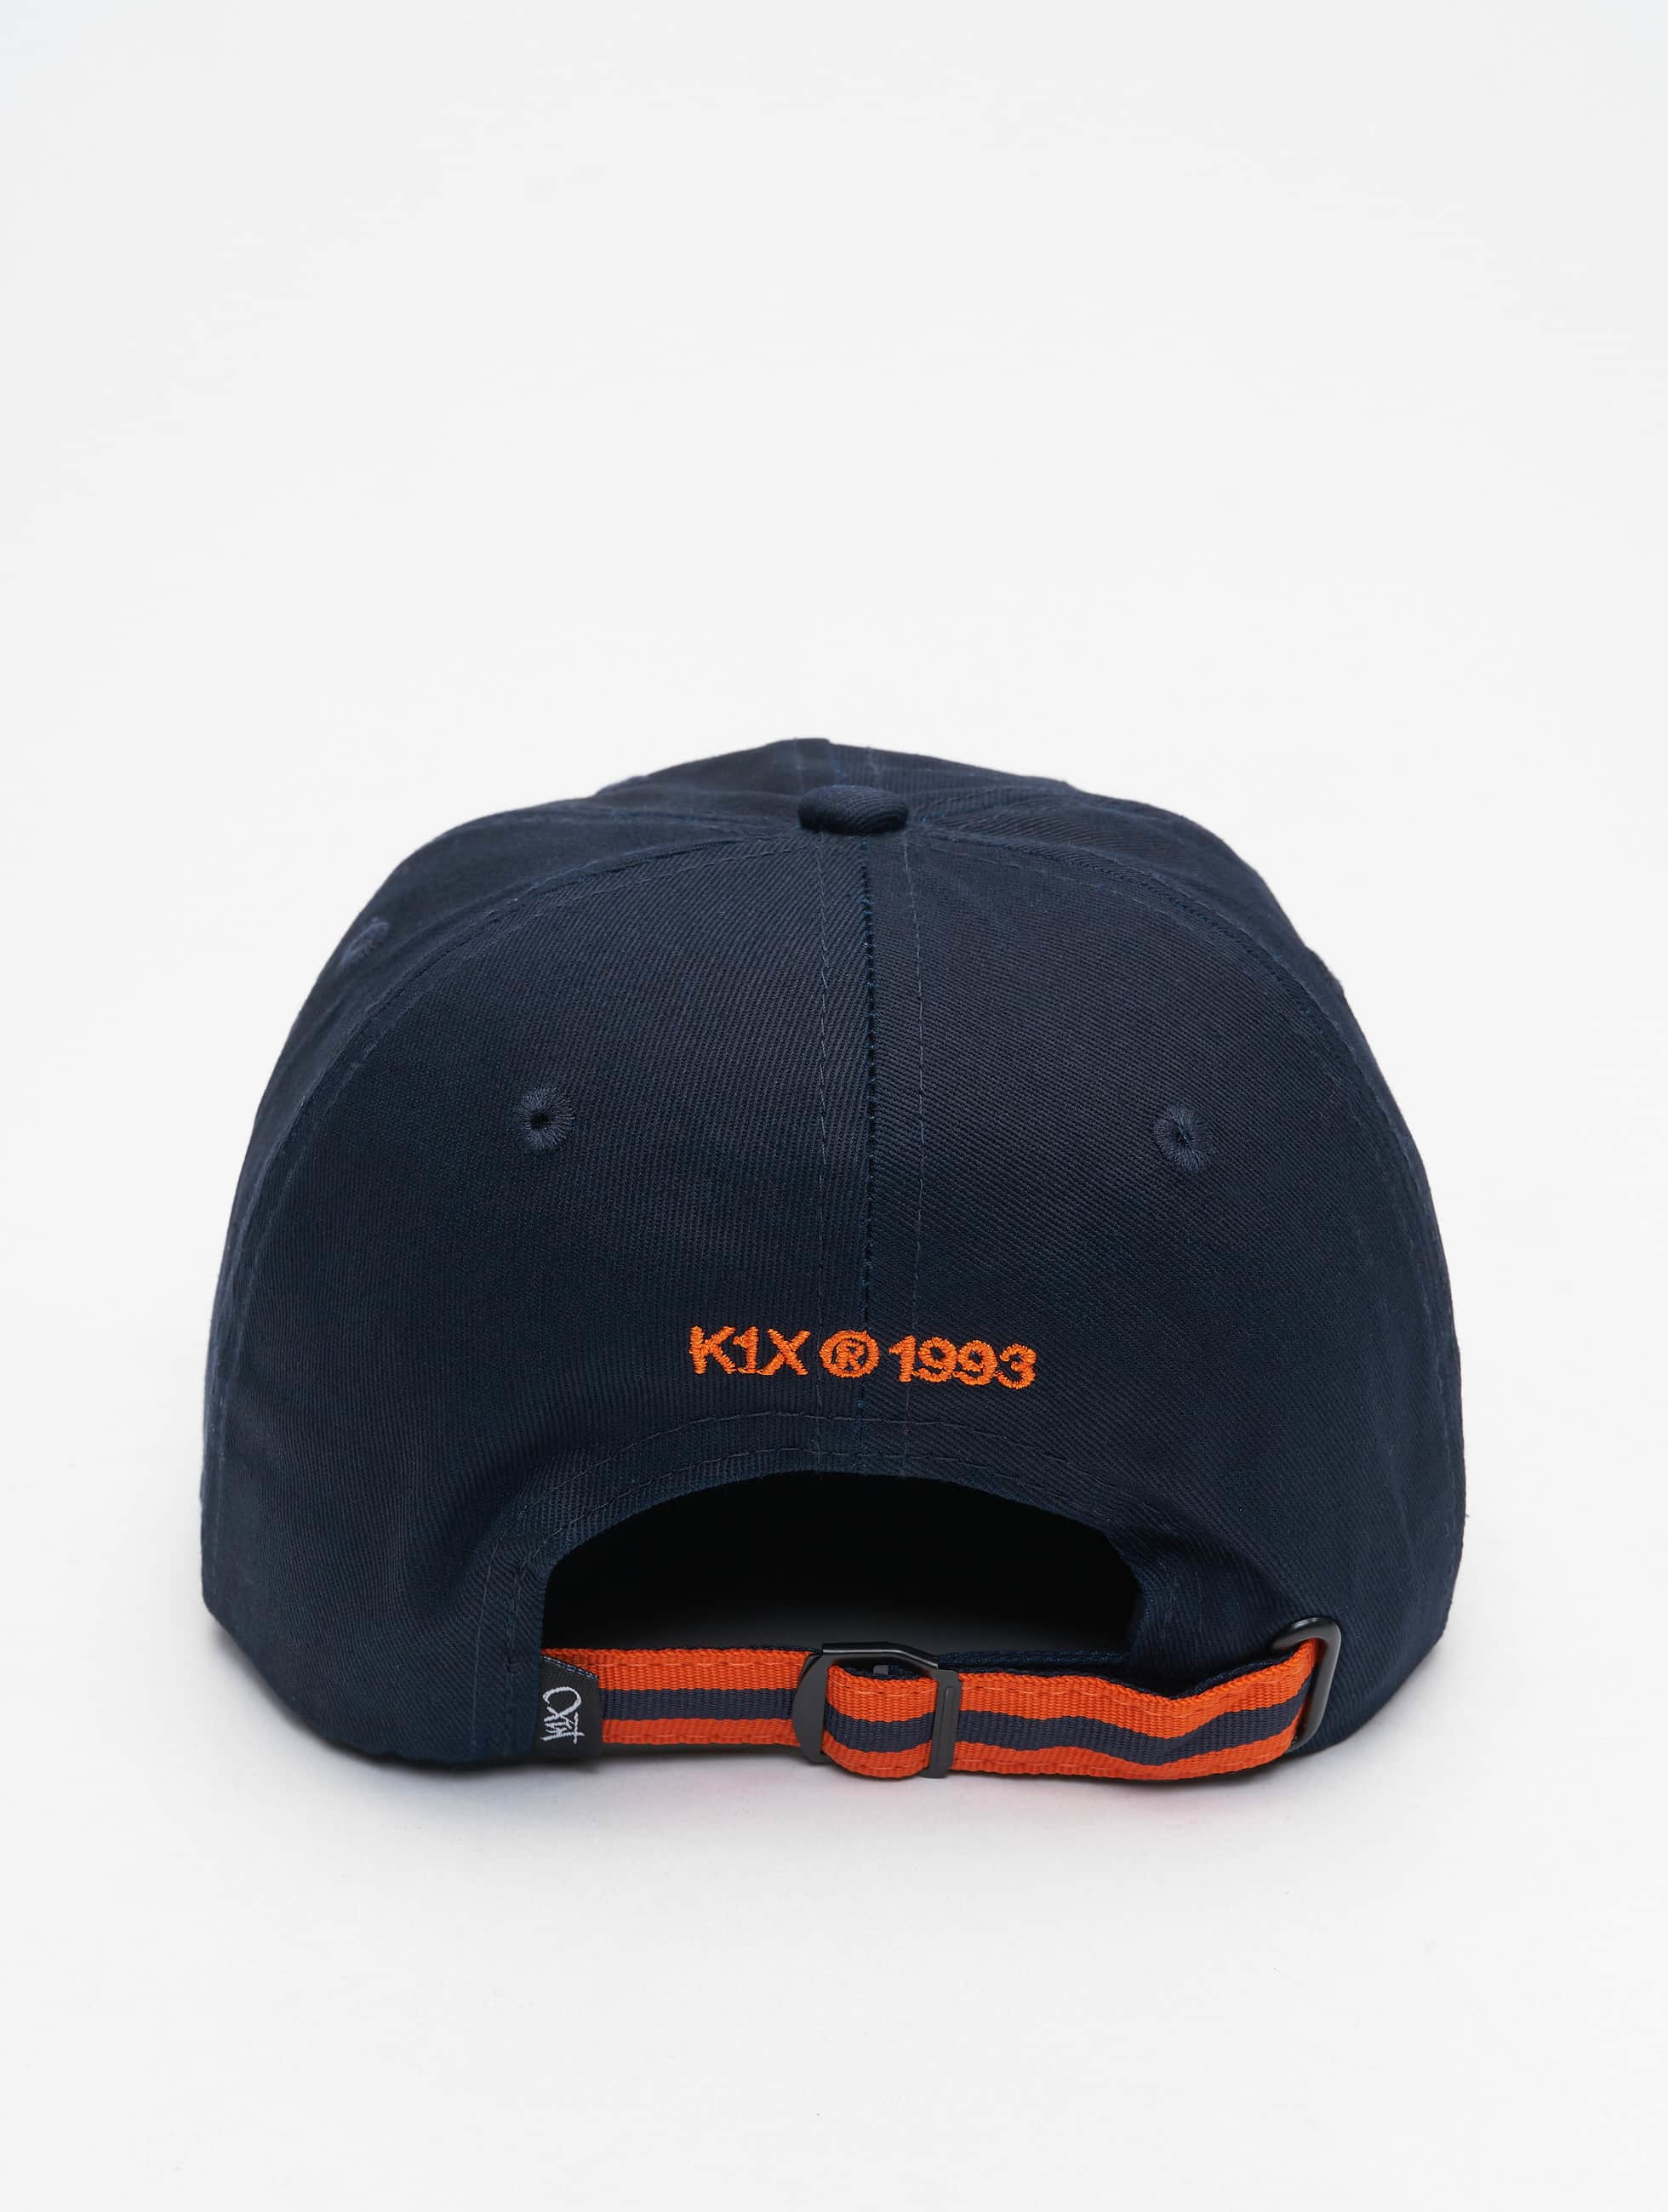 K1X Gorra Snapback Play Hard Basketball Sports azul